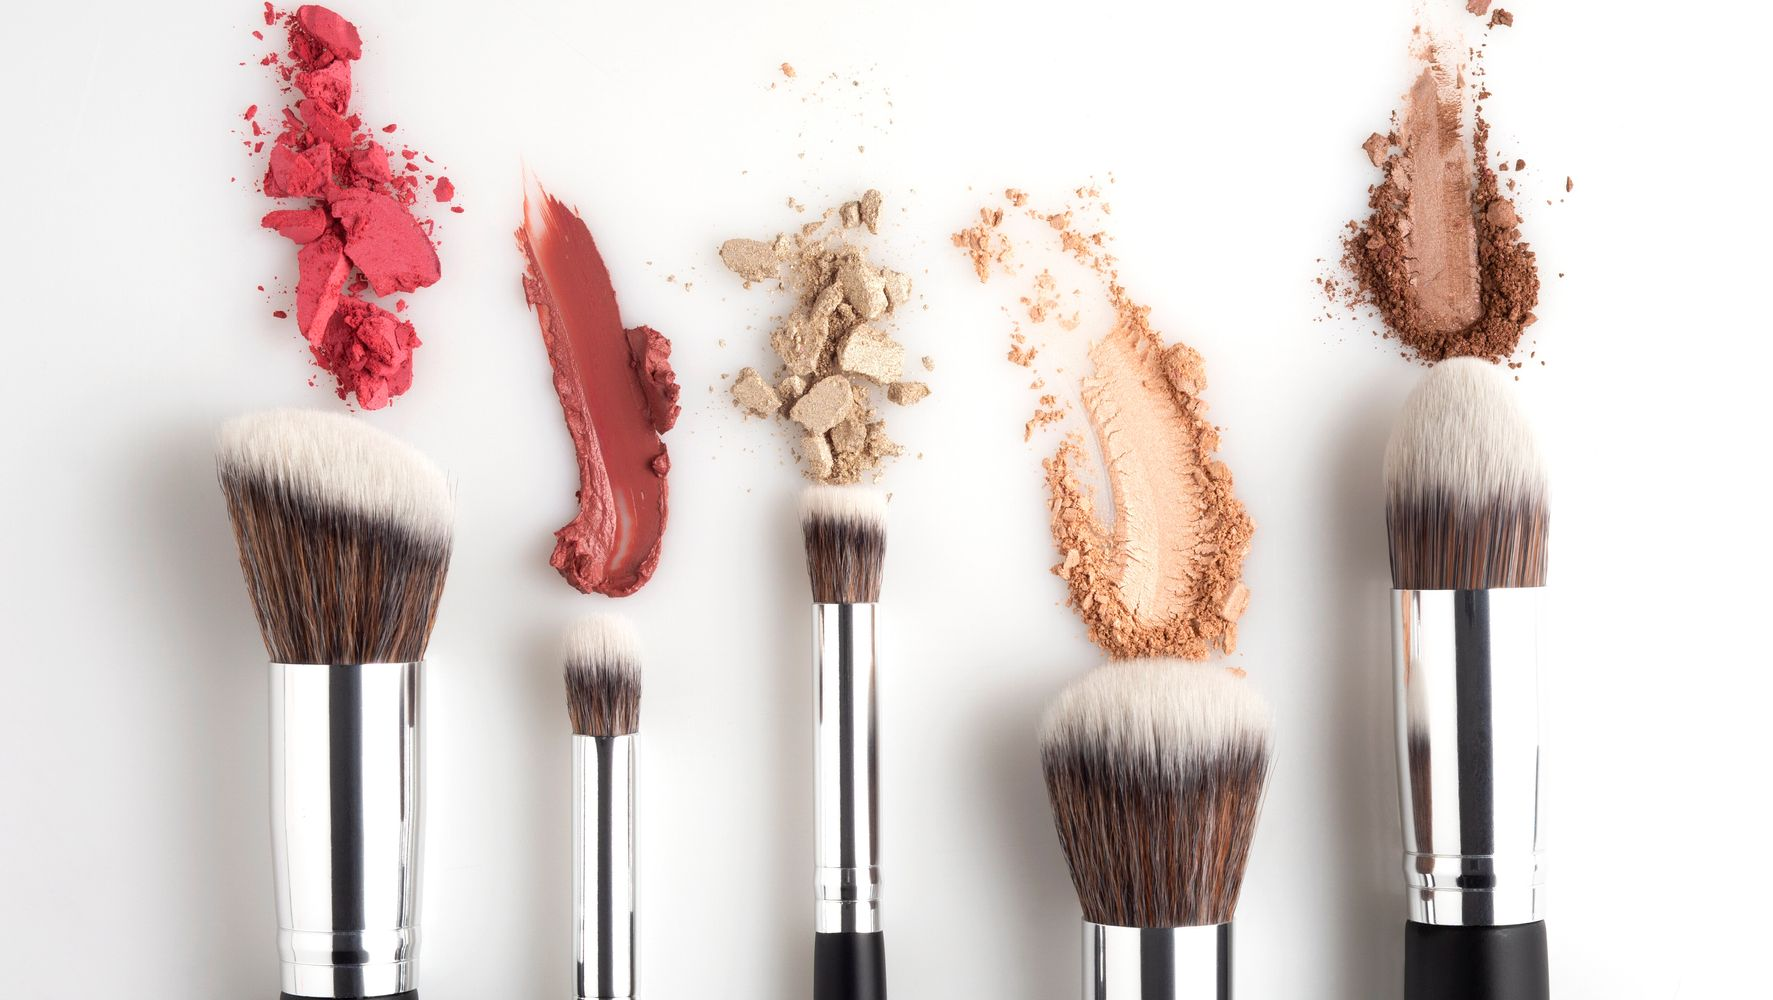 Why Secondhand Beauty Products Could Leave You Feeling Used